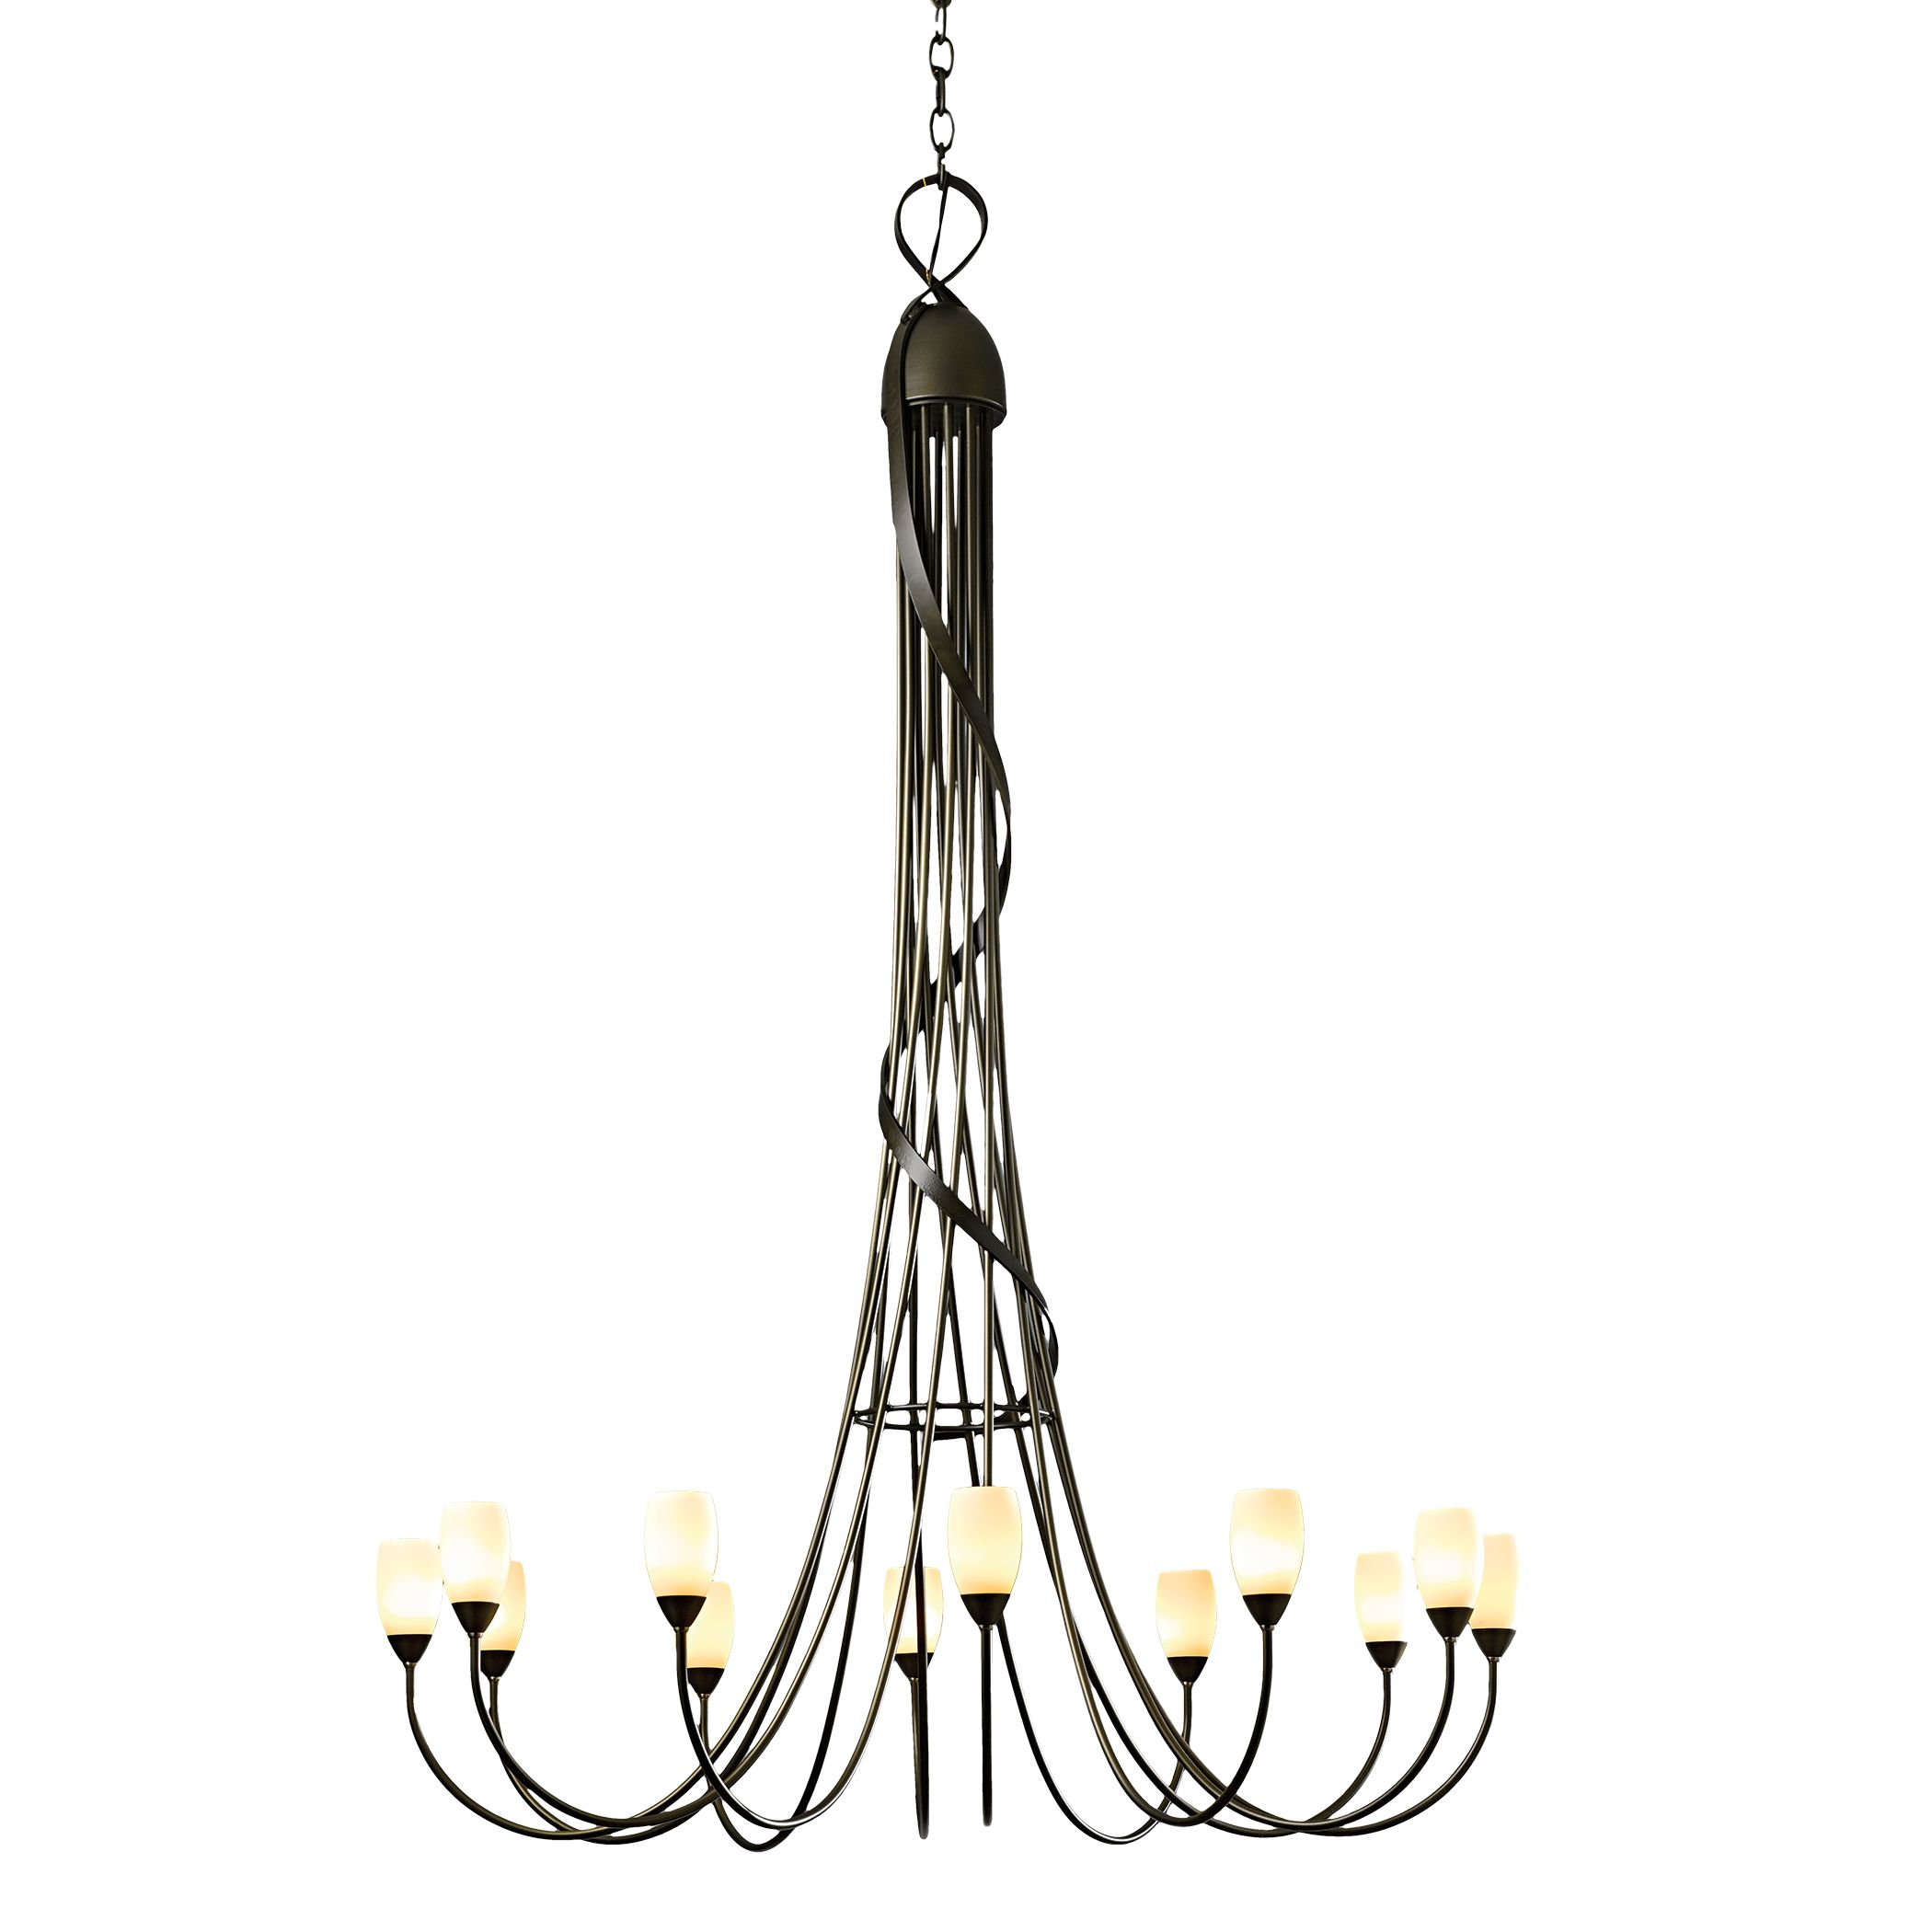 Constellation 8 Arm Chandelier Hubbardton Forge